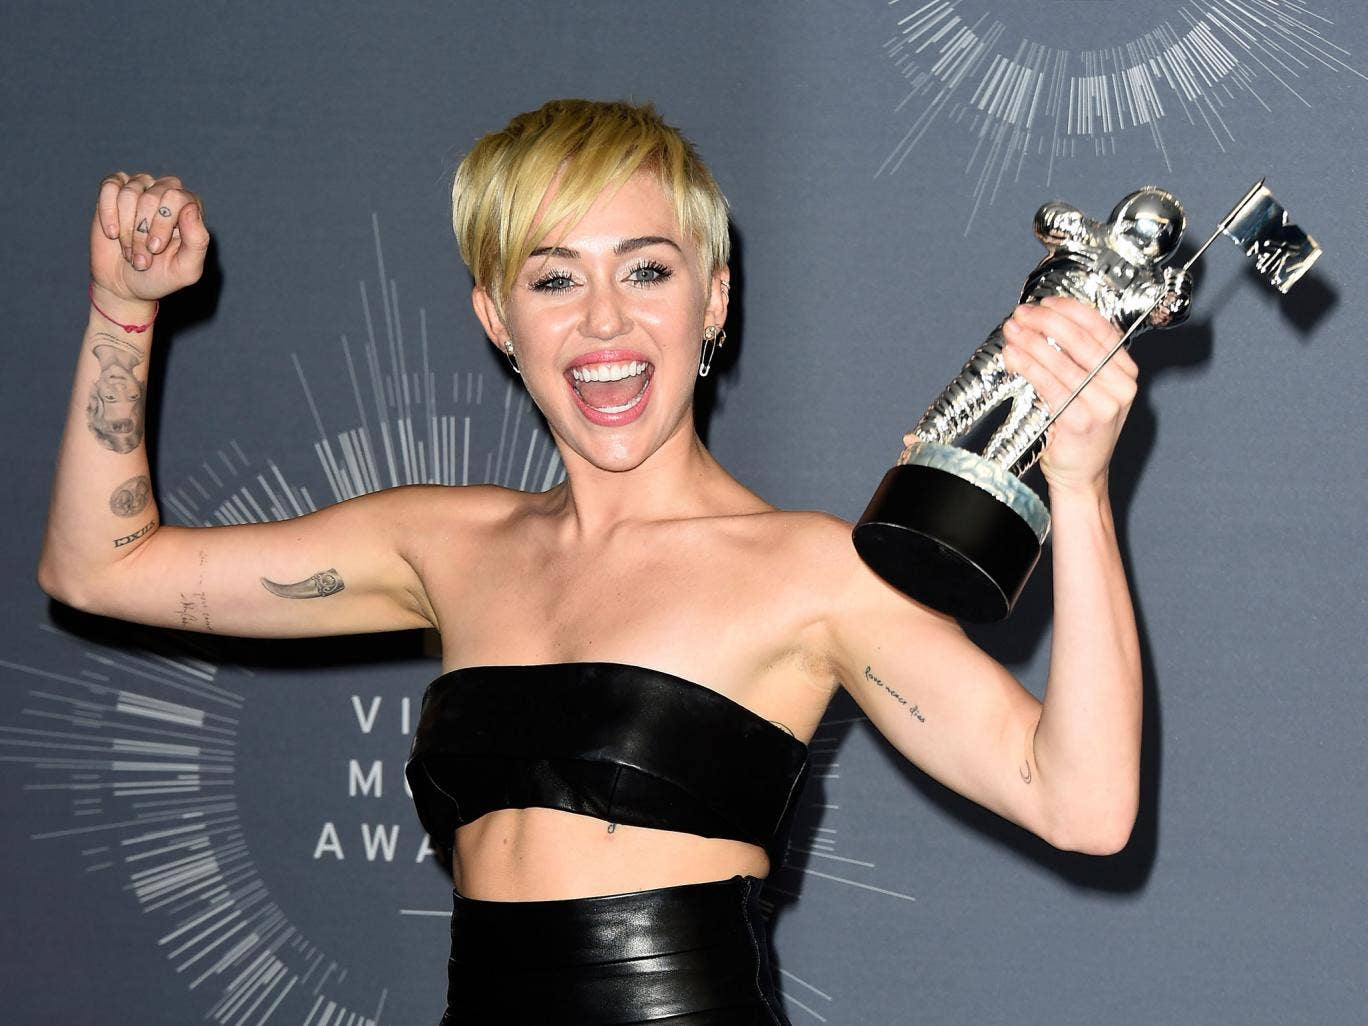 Miley Cyrus has taken home the prize for Video of the Year at the MTV Video Music Awards 2014